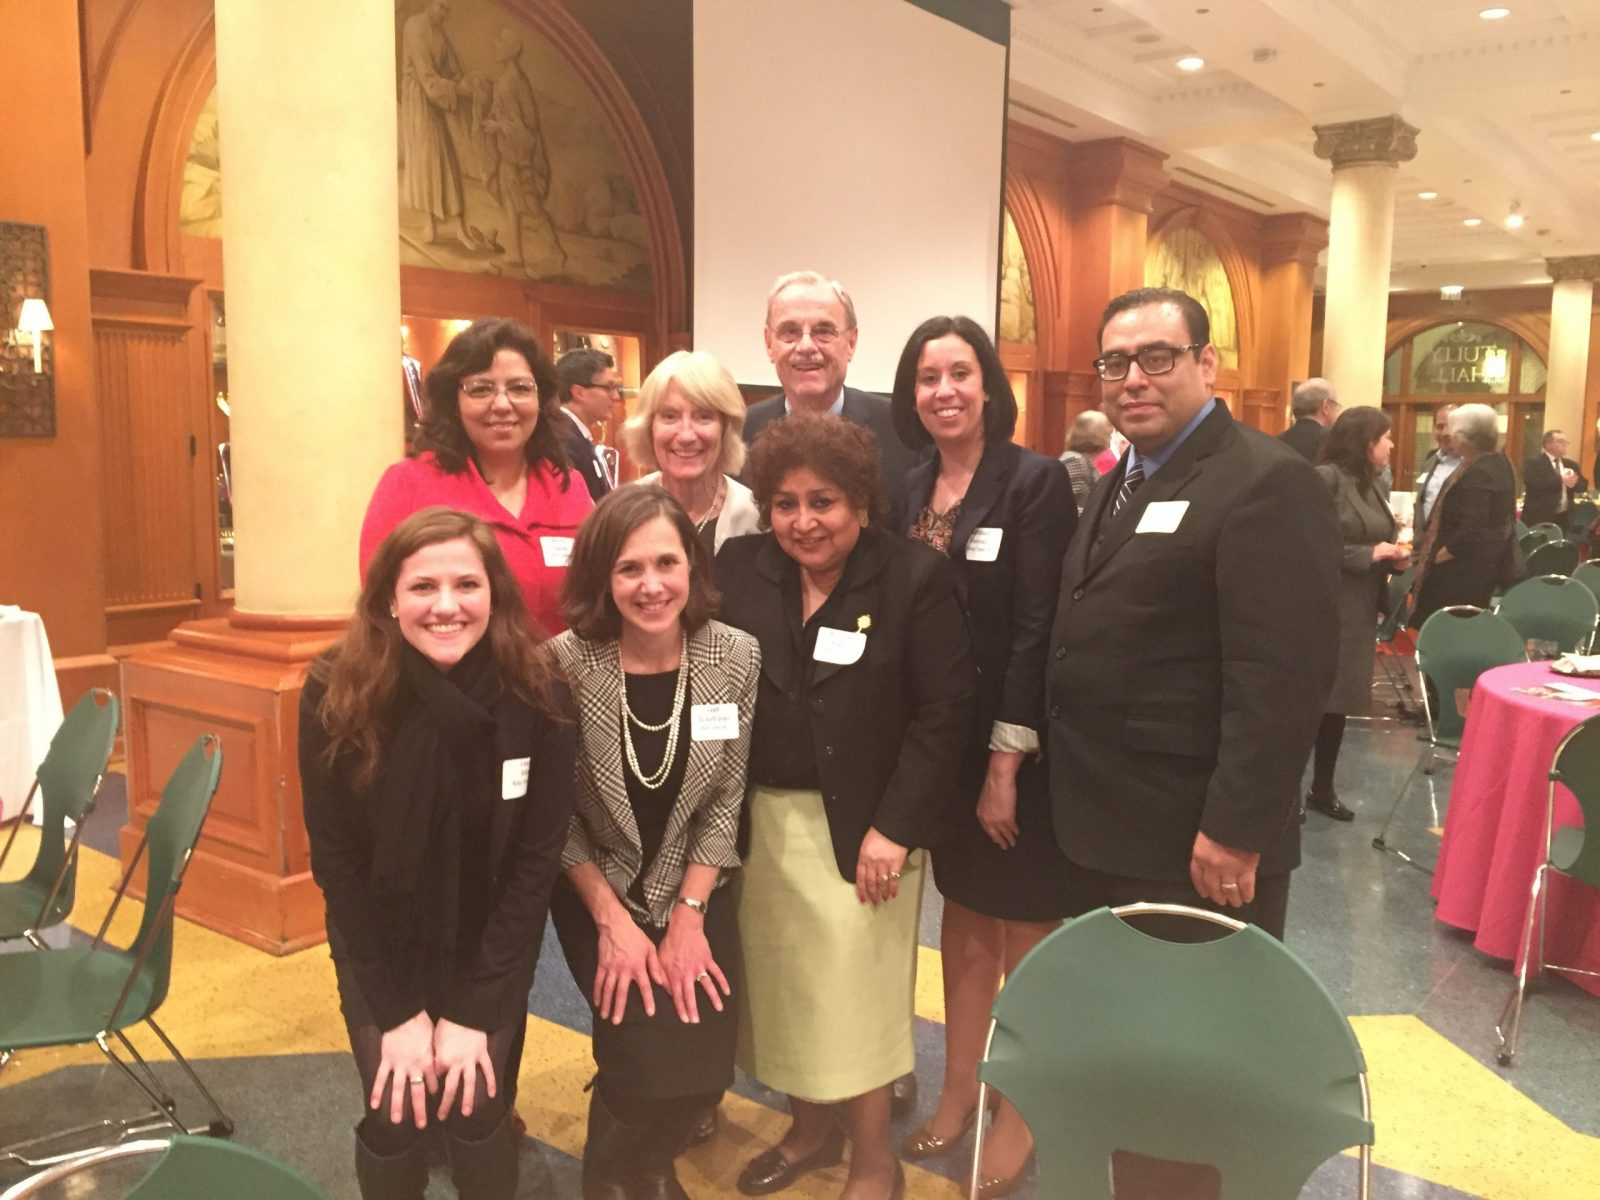 The Law Office of Robert D. Ahlgren is one of the Sponsors of the Voices from the Journey Fundraiser Hosted by Archbishop Cupich to Benefit the Office of Immigrant Affairs